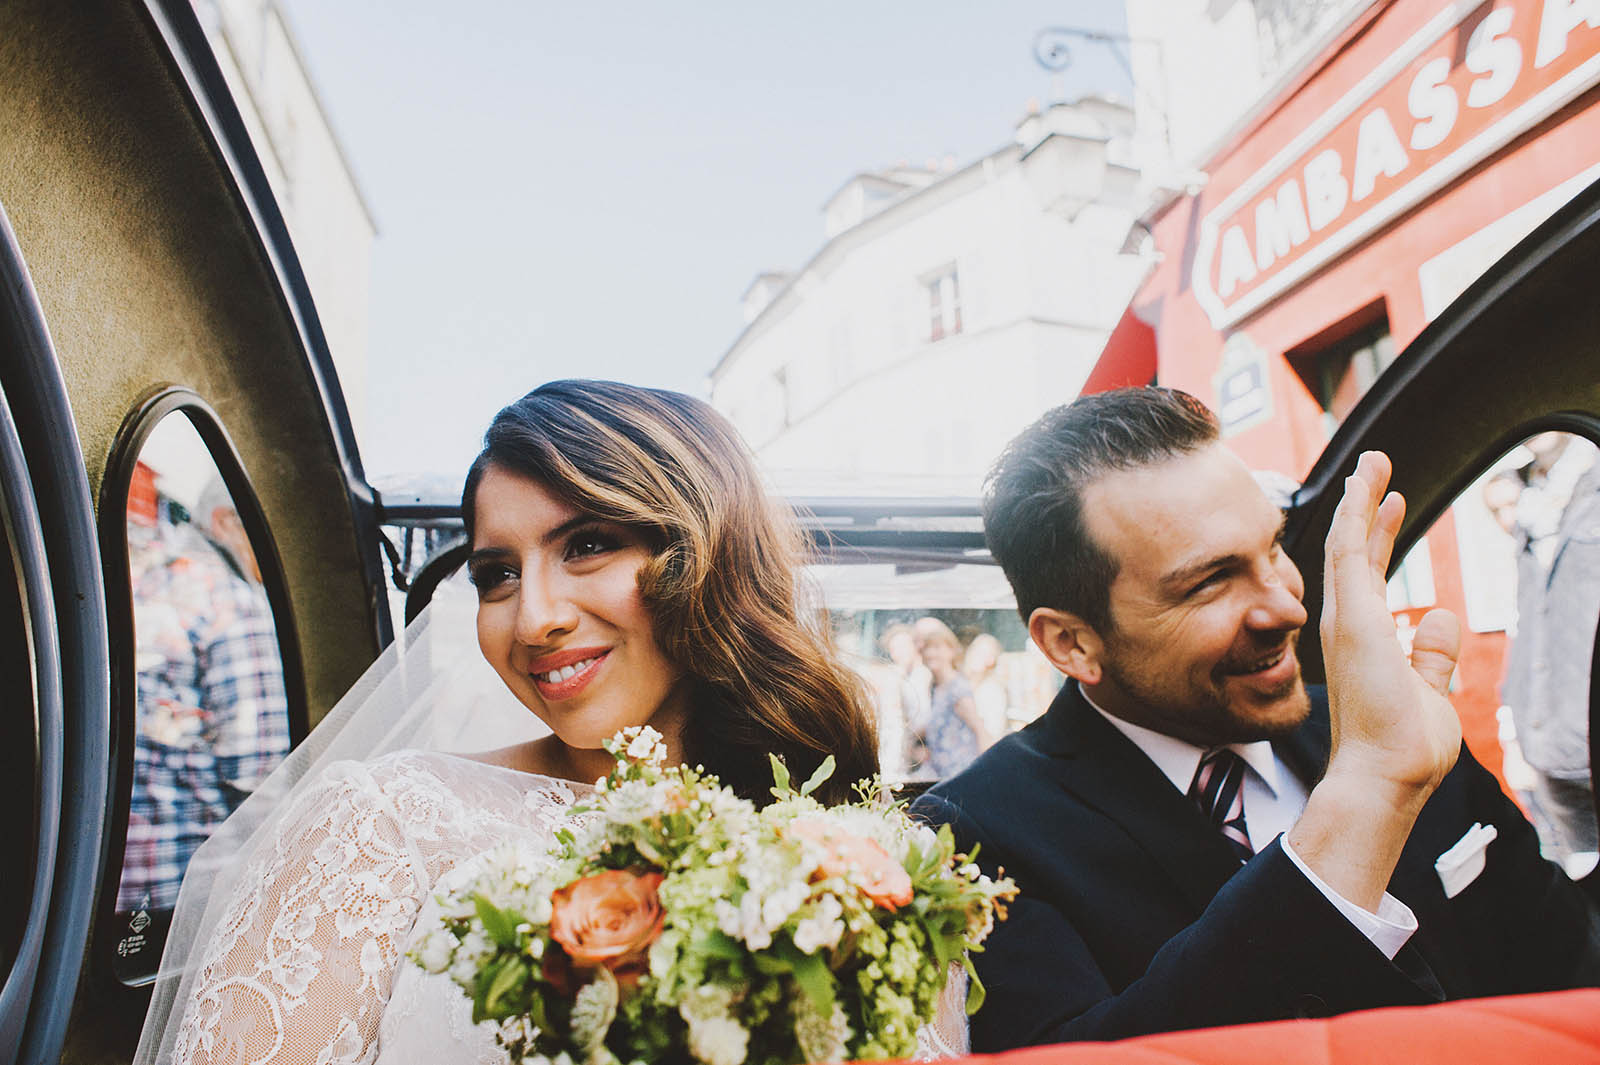 Bride and Groom waving at crowds of tourists in the street | Springtime Paris Elopement at Parc des Buttes Chaumont